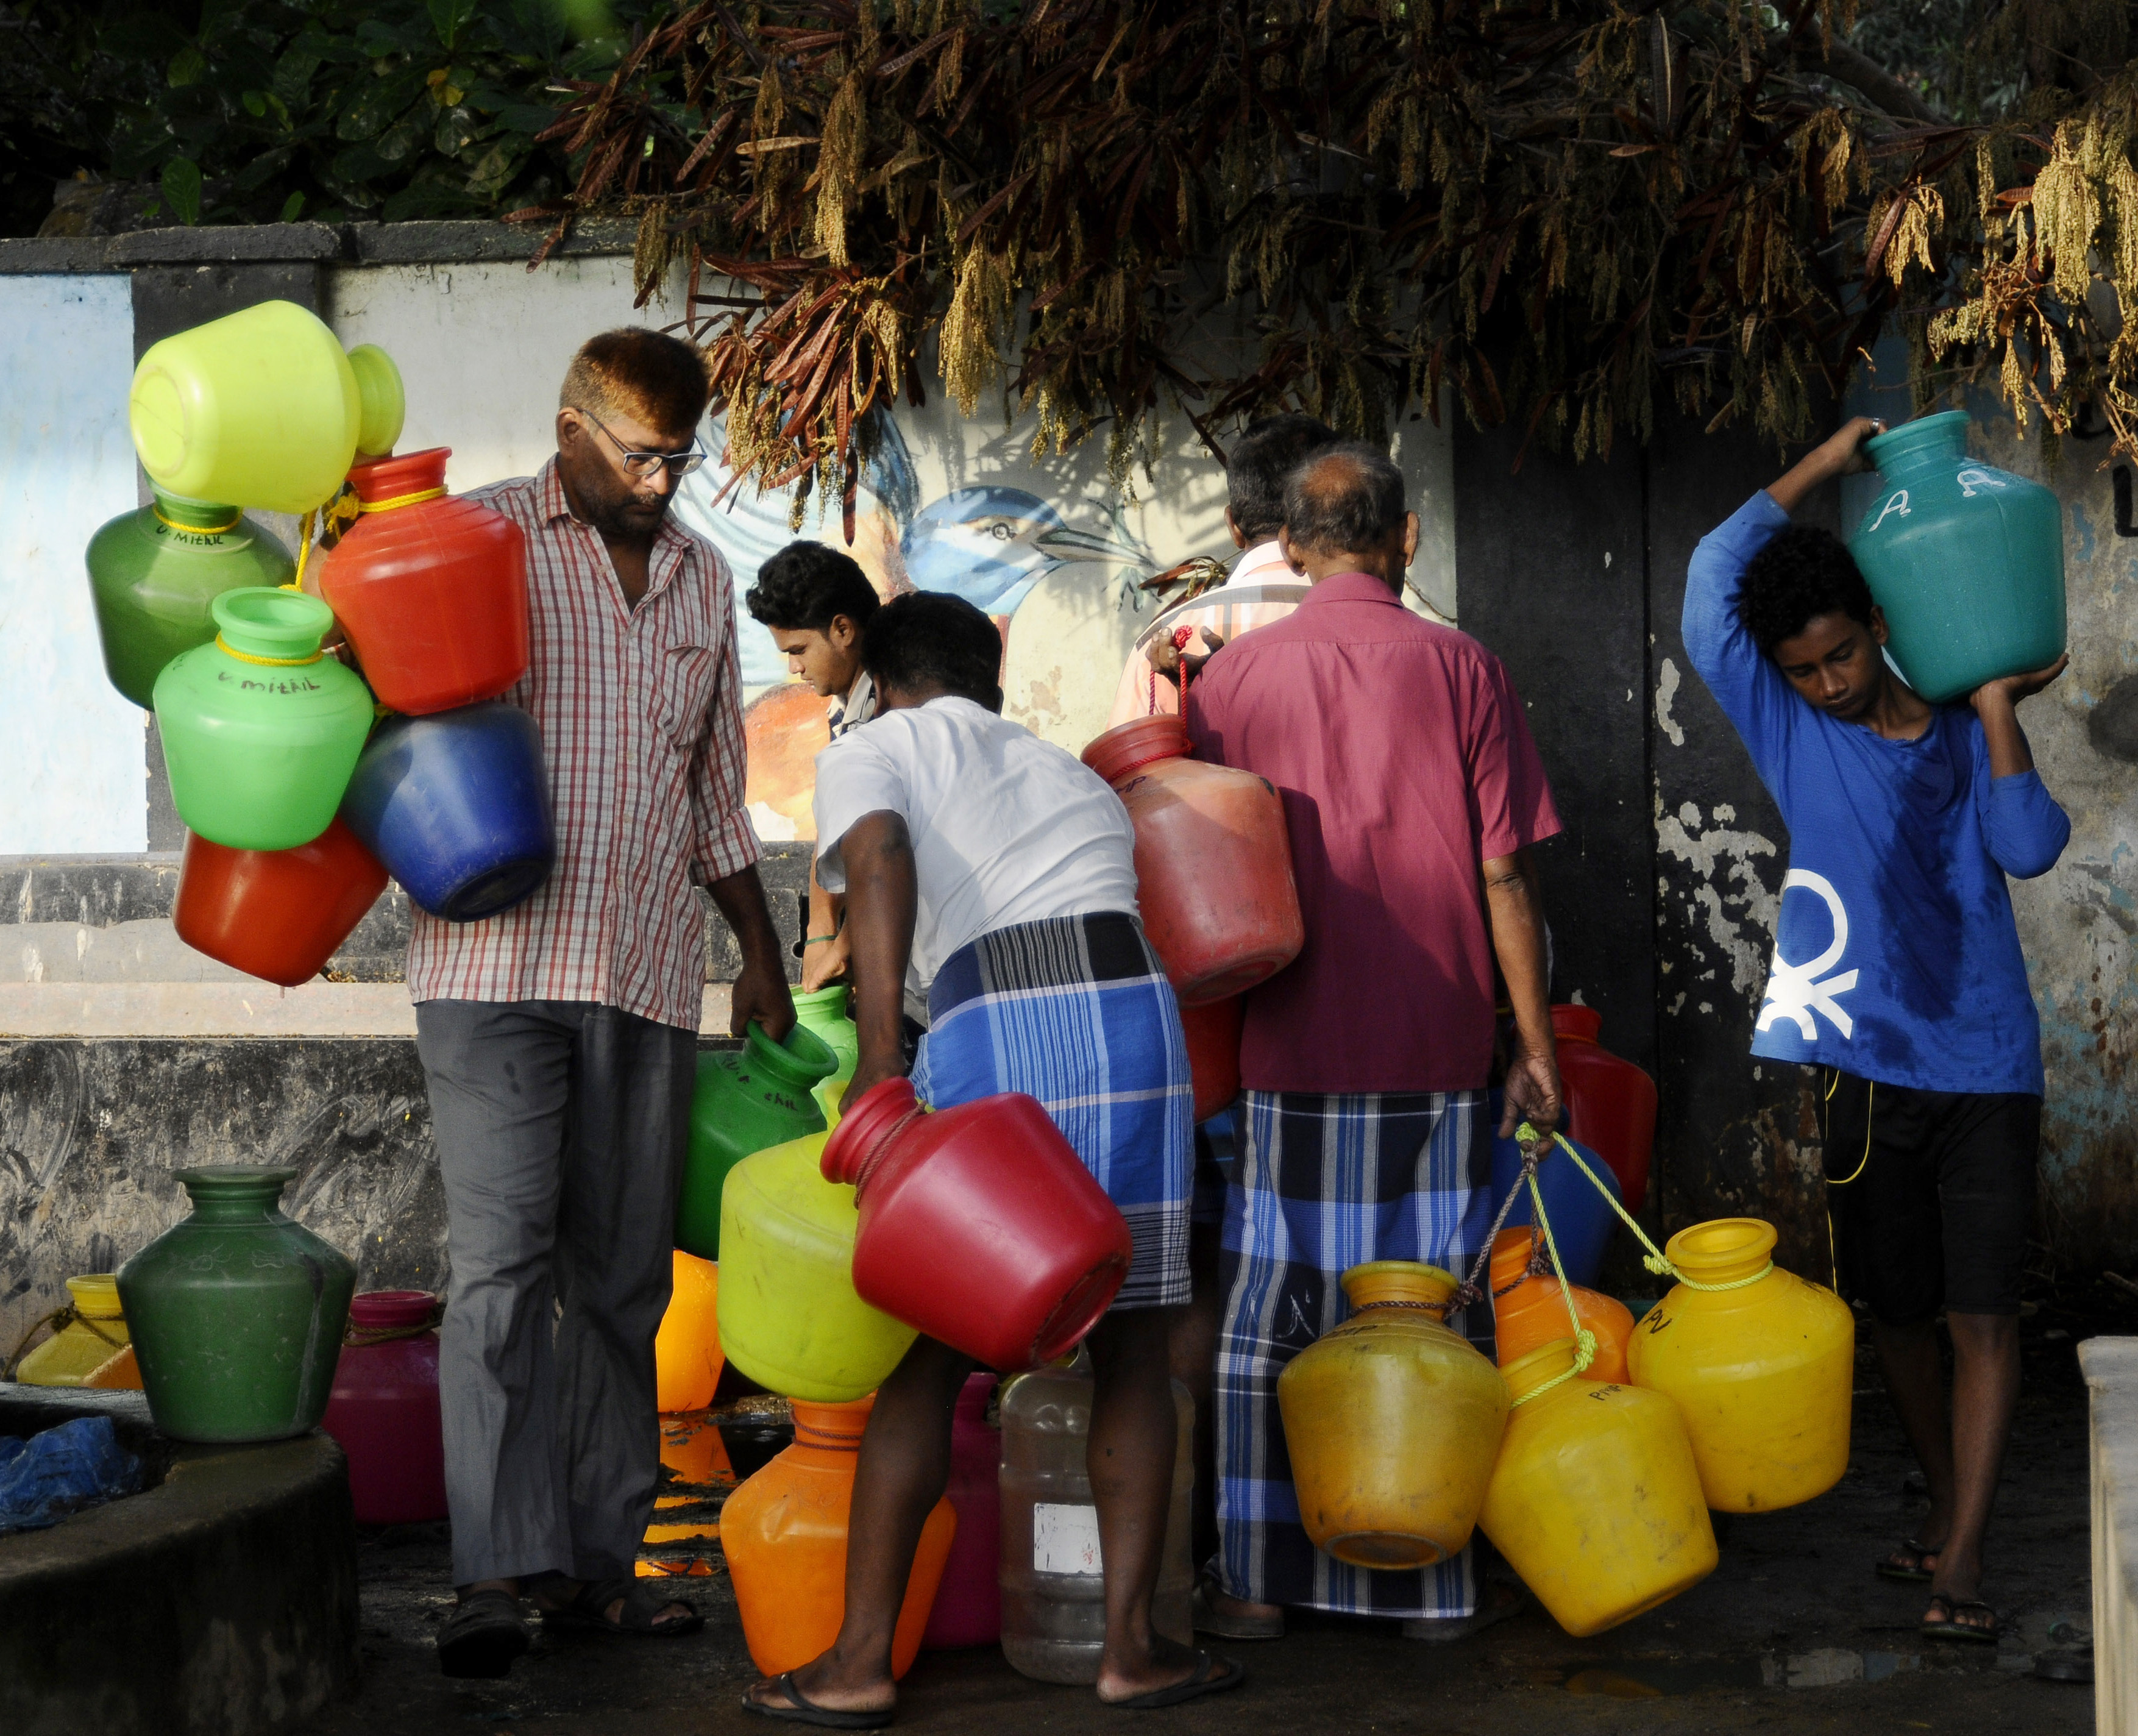 Train carrying water to reach parched Chennai in afternoon: Railways